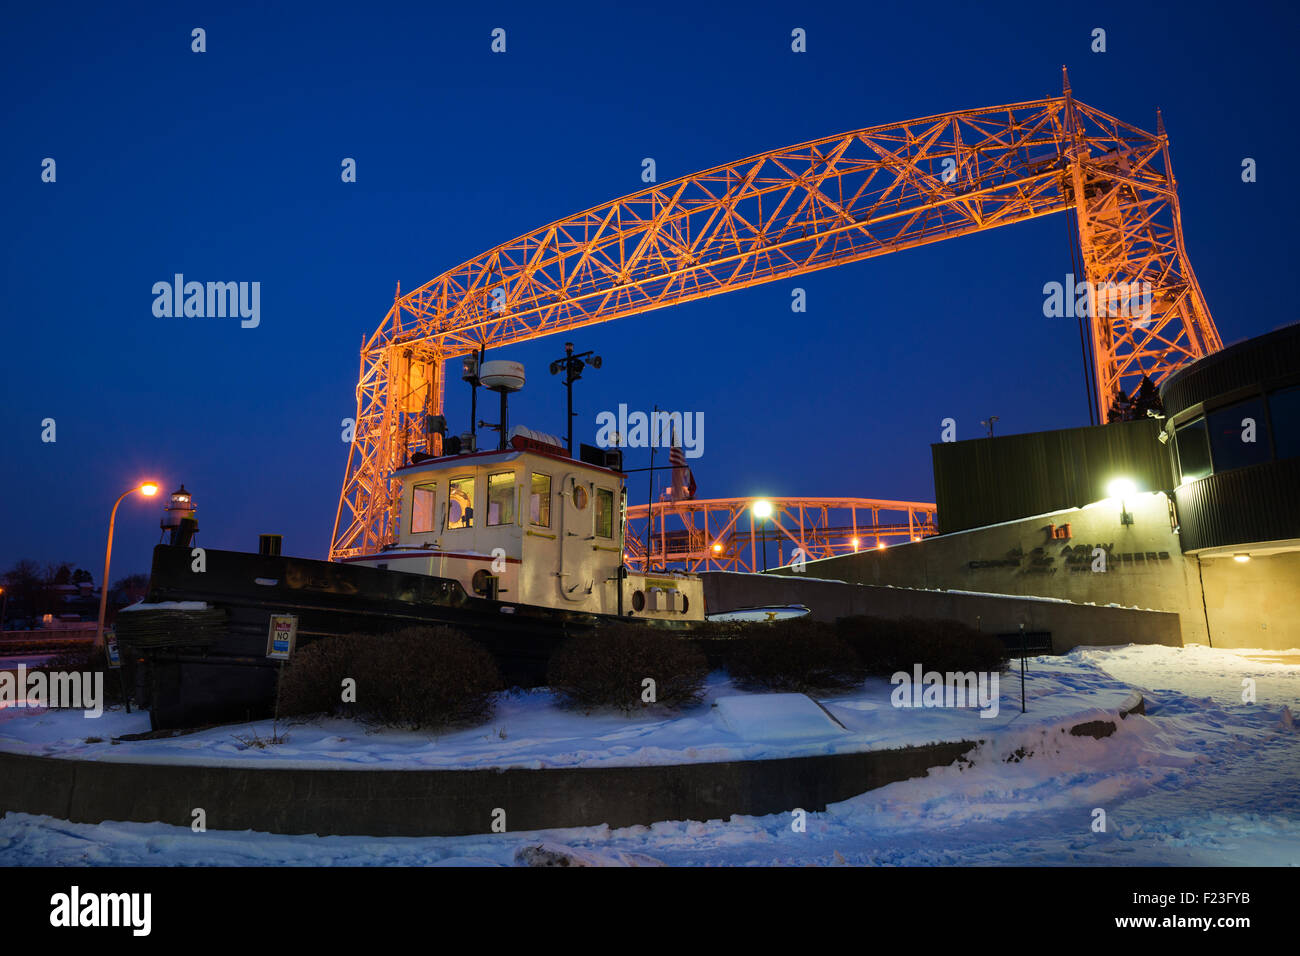 Illuminated Aerial bridge over Lake Superior with tug boat in foreground at dawn in winter, Duluth, Minnesota, USA - Stock Image